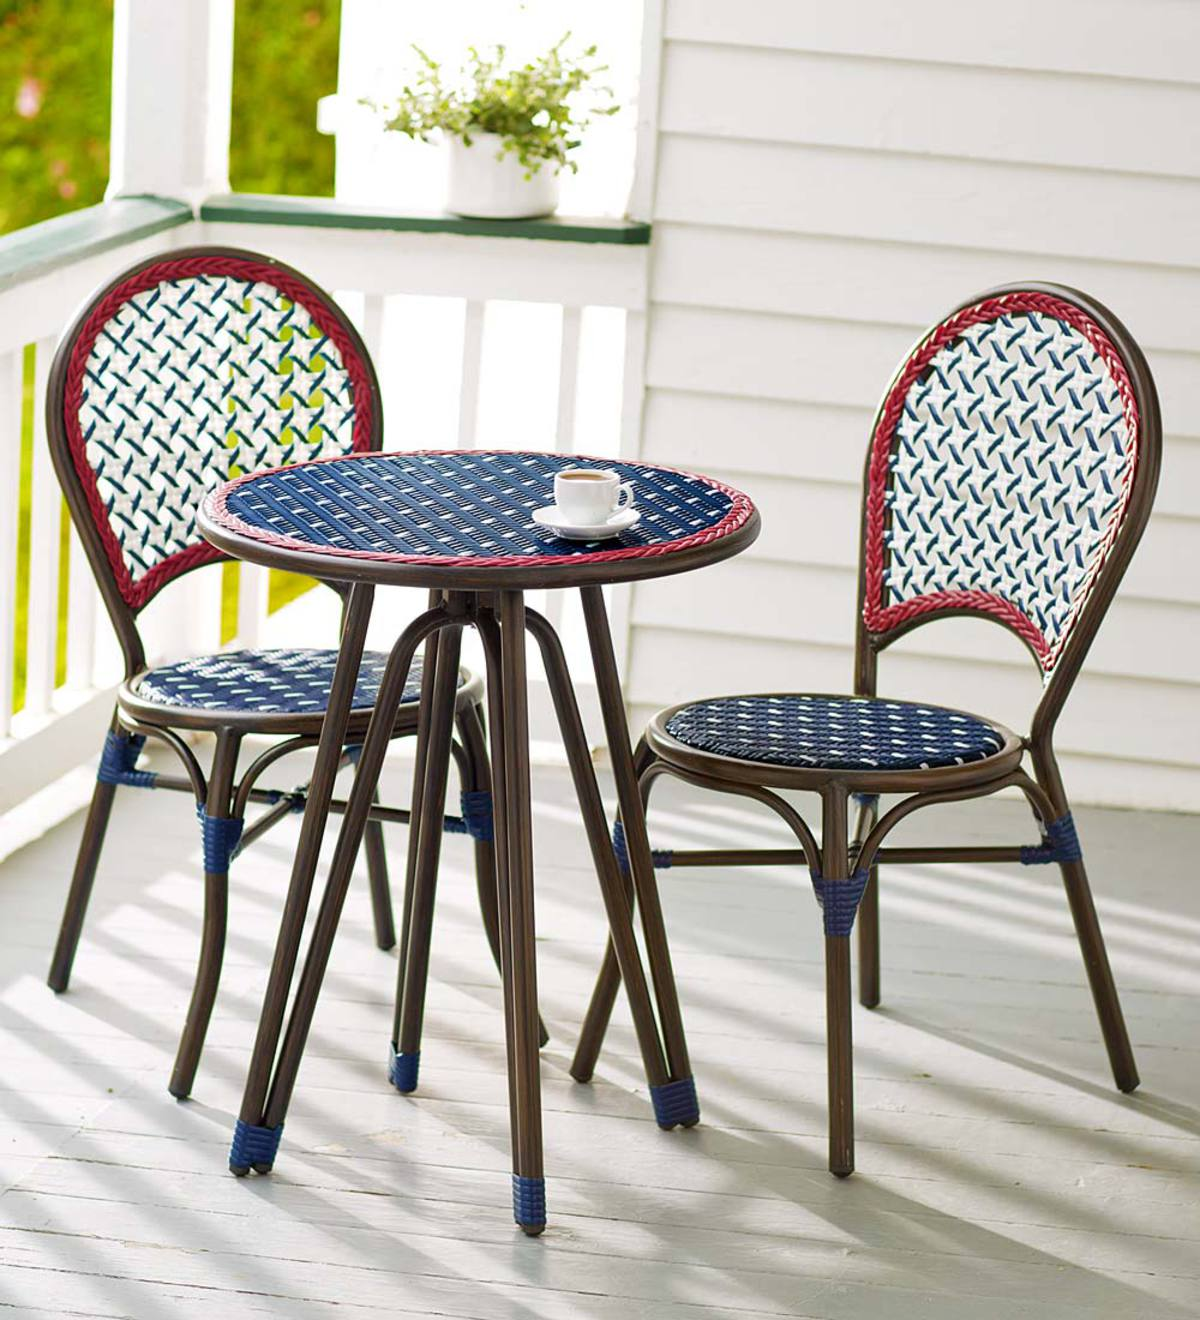 Americana Wicker Bistro Table And Chairs Set Plowhearth